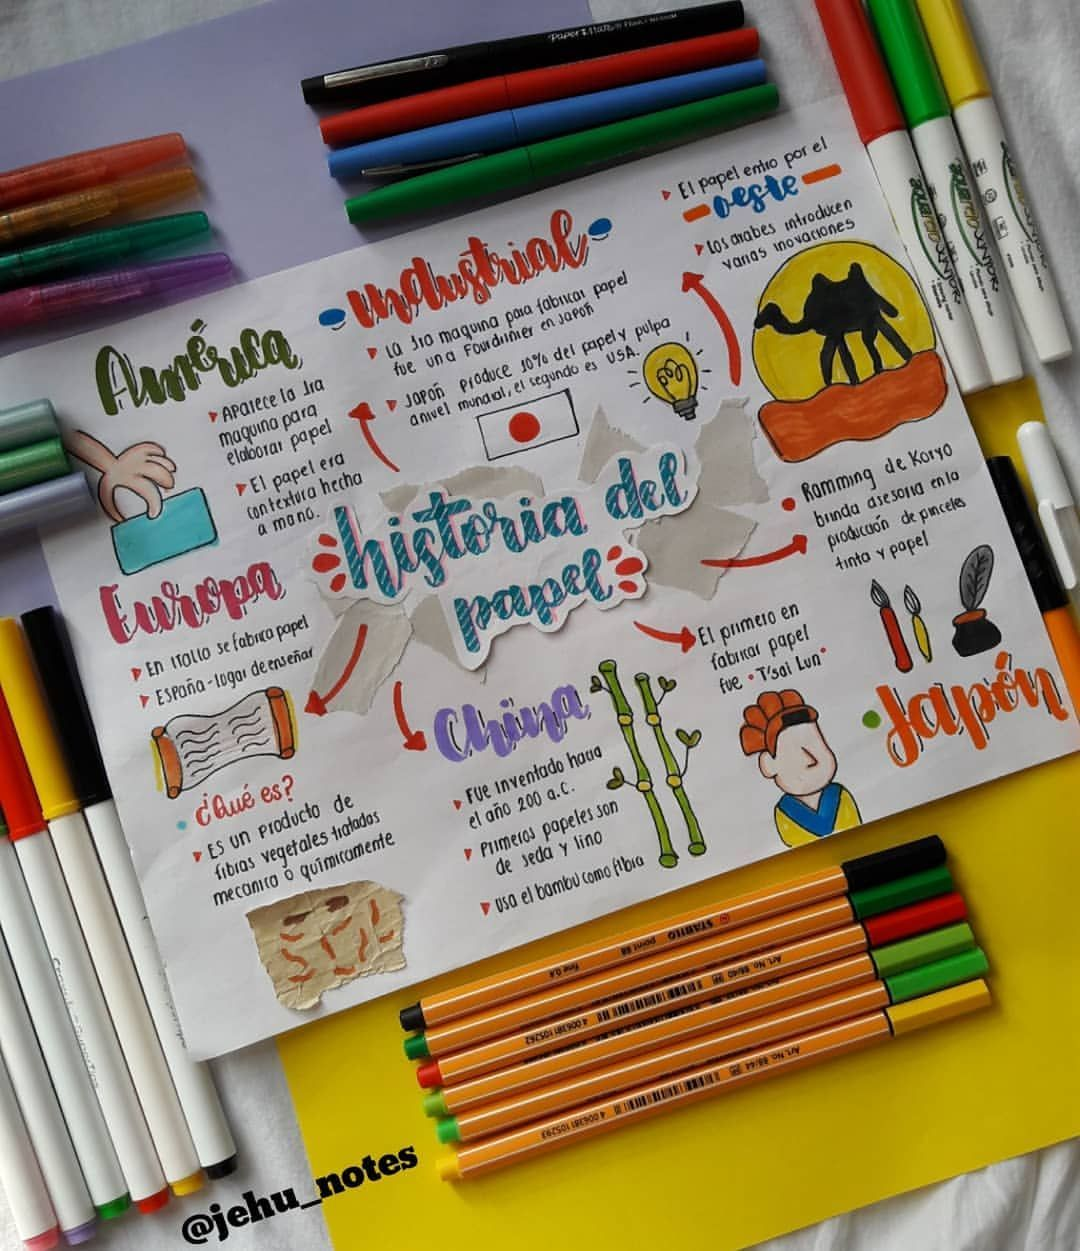 Apuntes Sobre El Arte De Escribir Cuentos Bullet Journal School Bullet Journal Ideas Pages Bullet Journal Notes